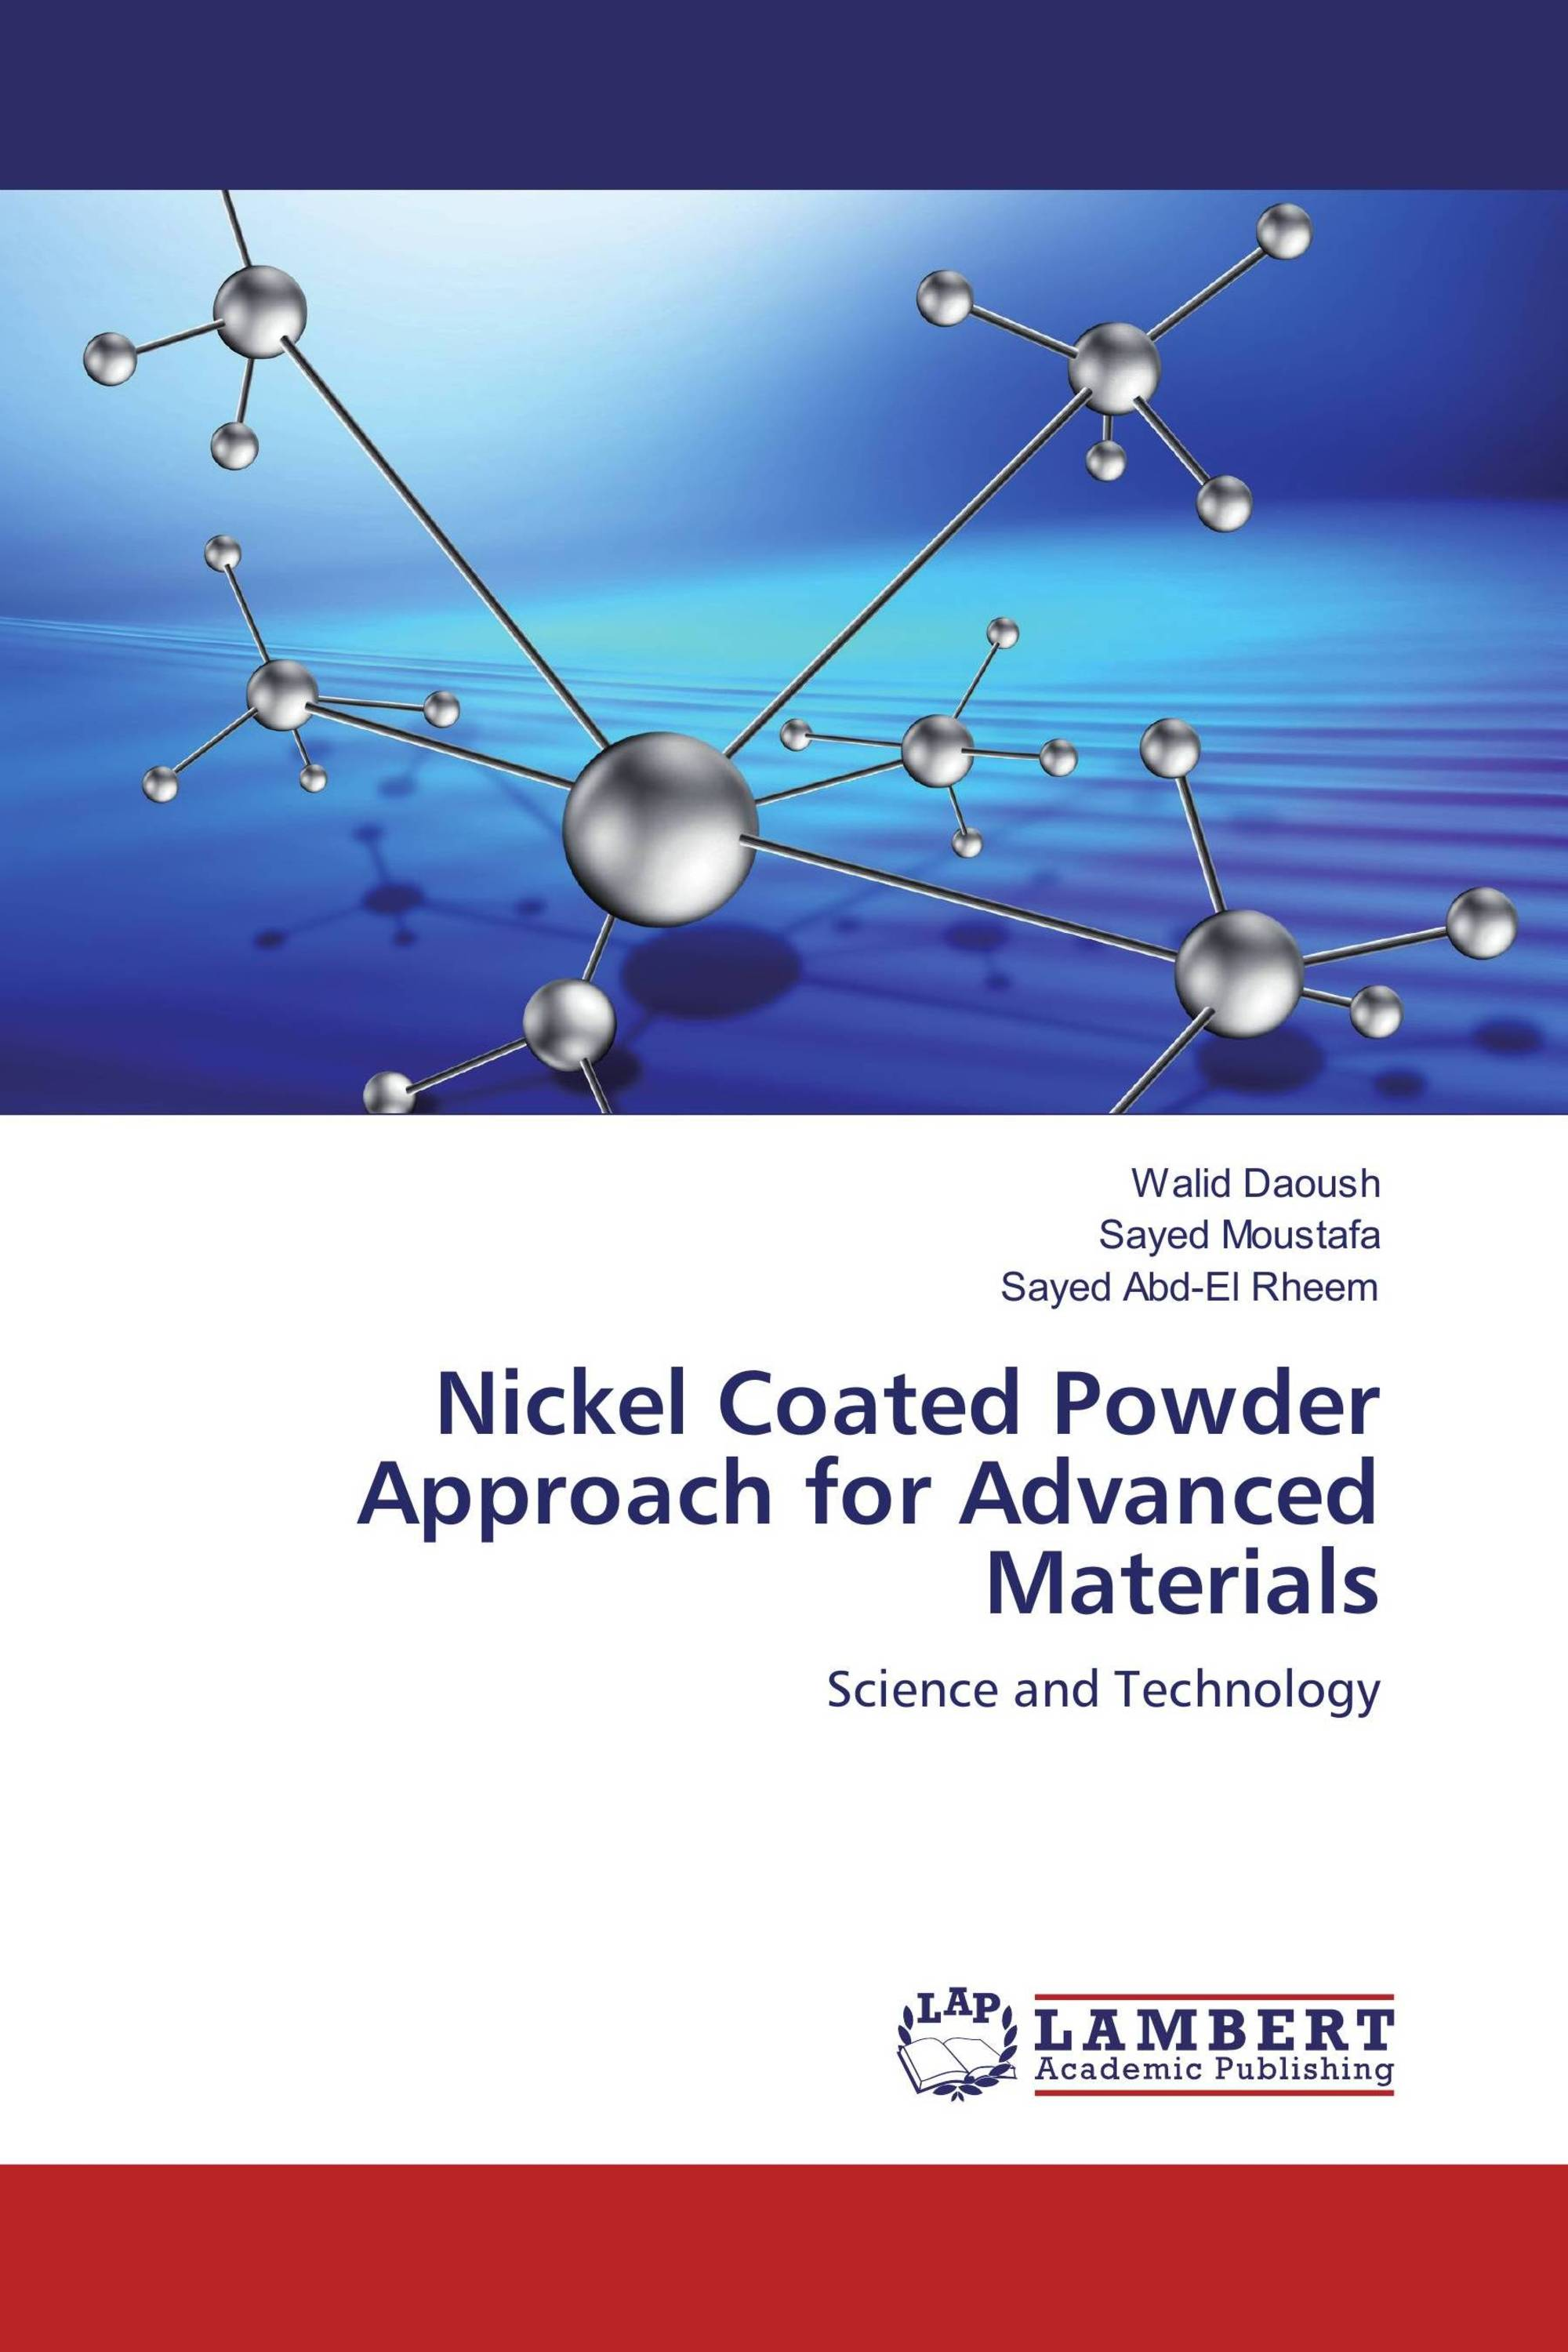 Nickel Coated Powder Approach for Advanced Materials